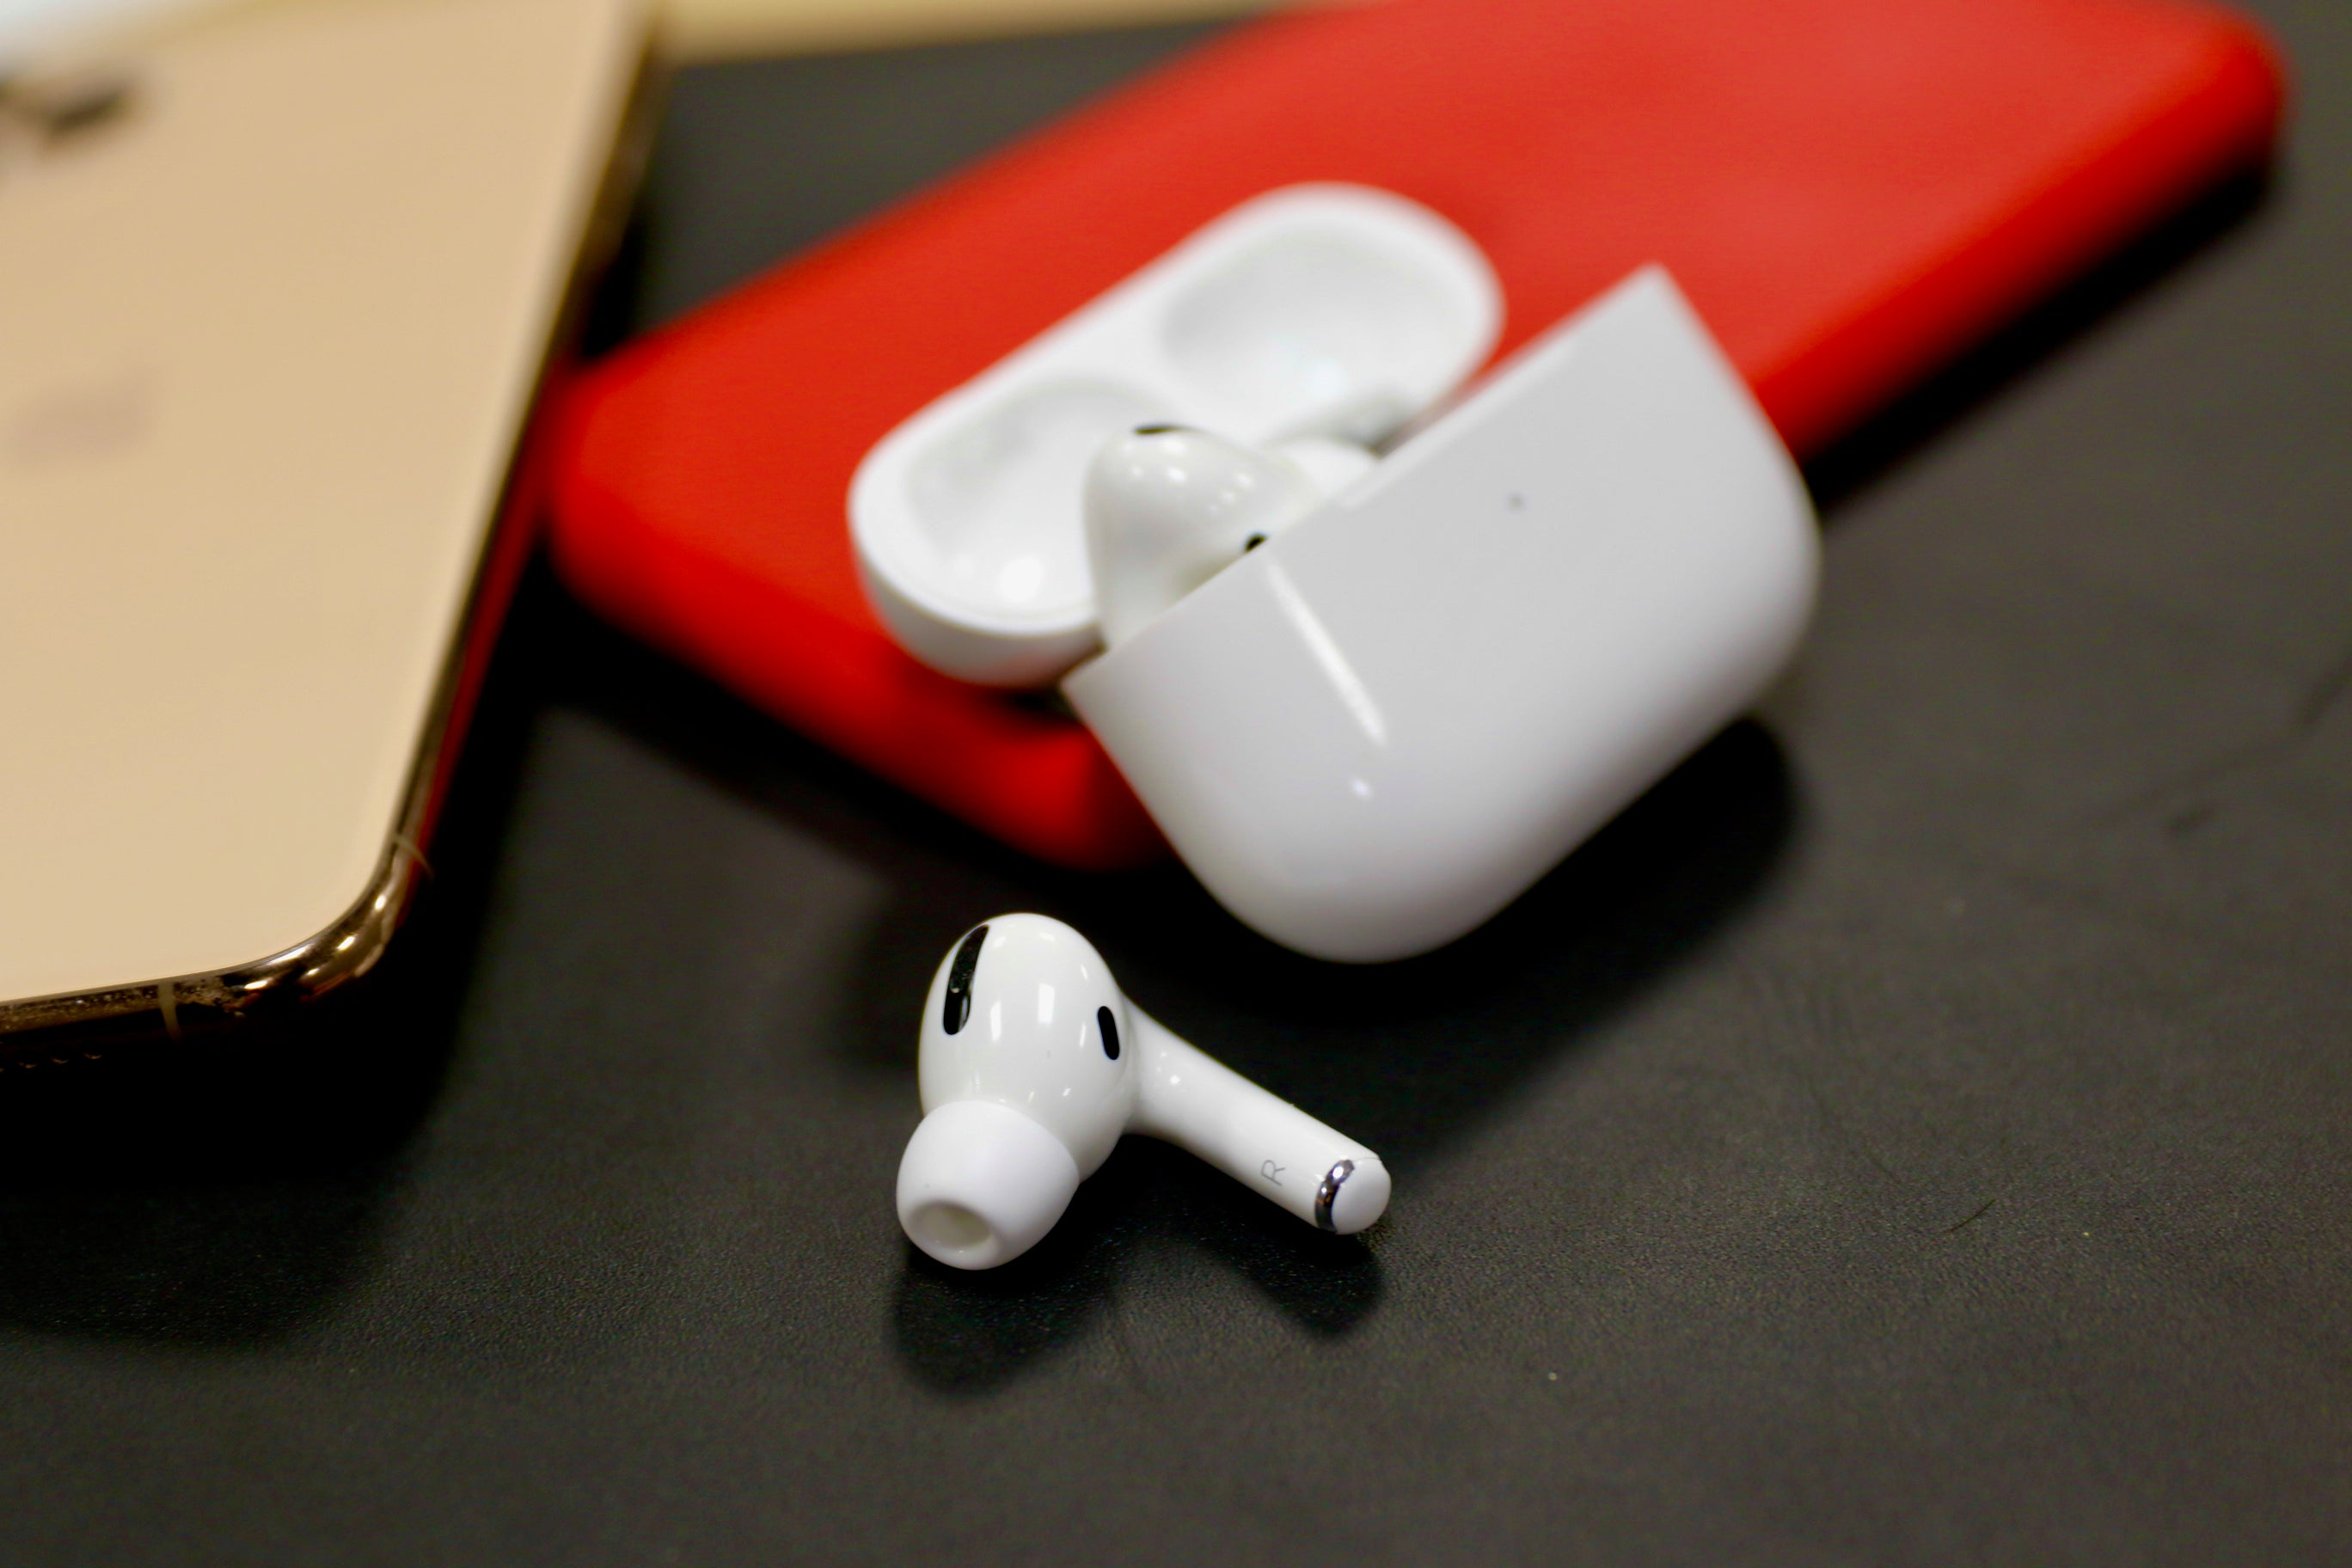 Apple just made replacing AirPods Pro ear tips a whole lot